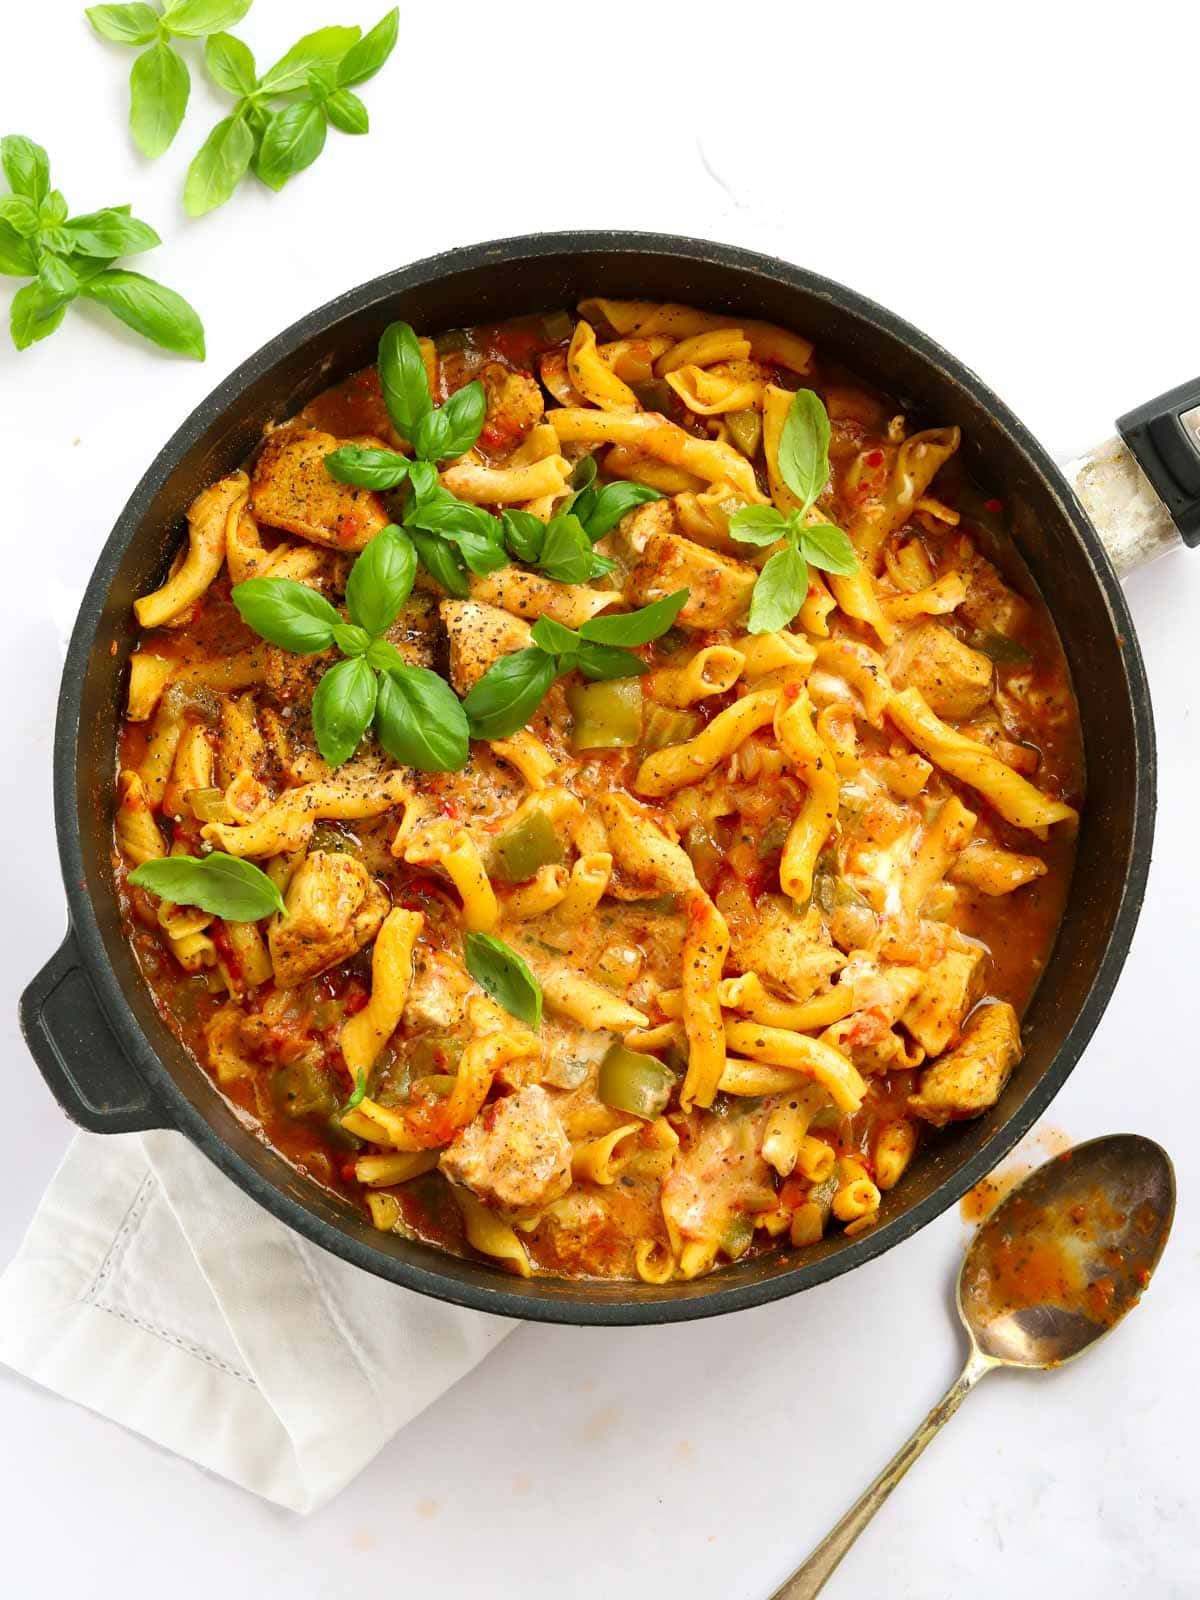 Pan of pasta with tomato and chicken sauce with green peppers and onions and basil